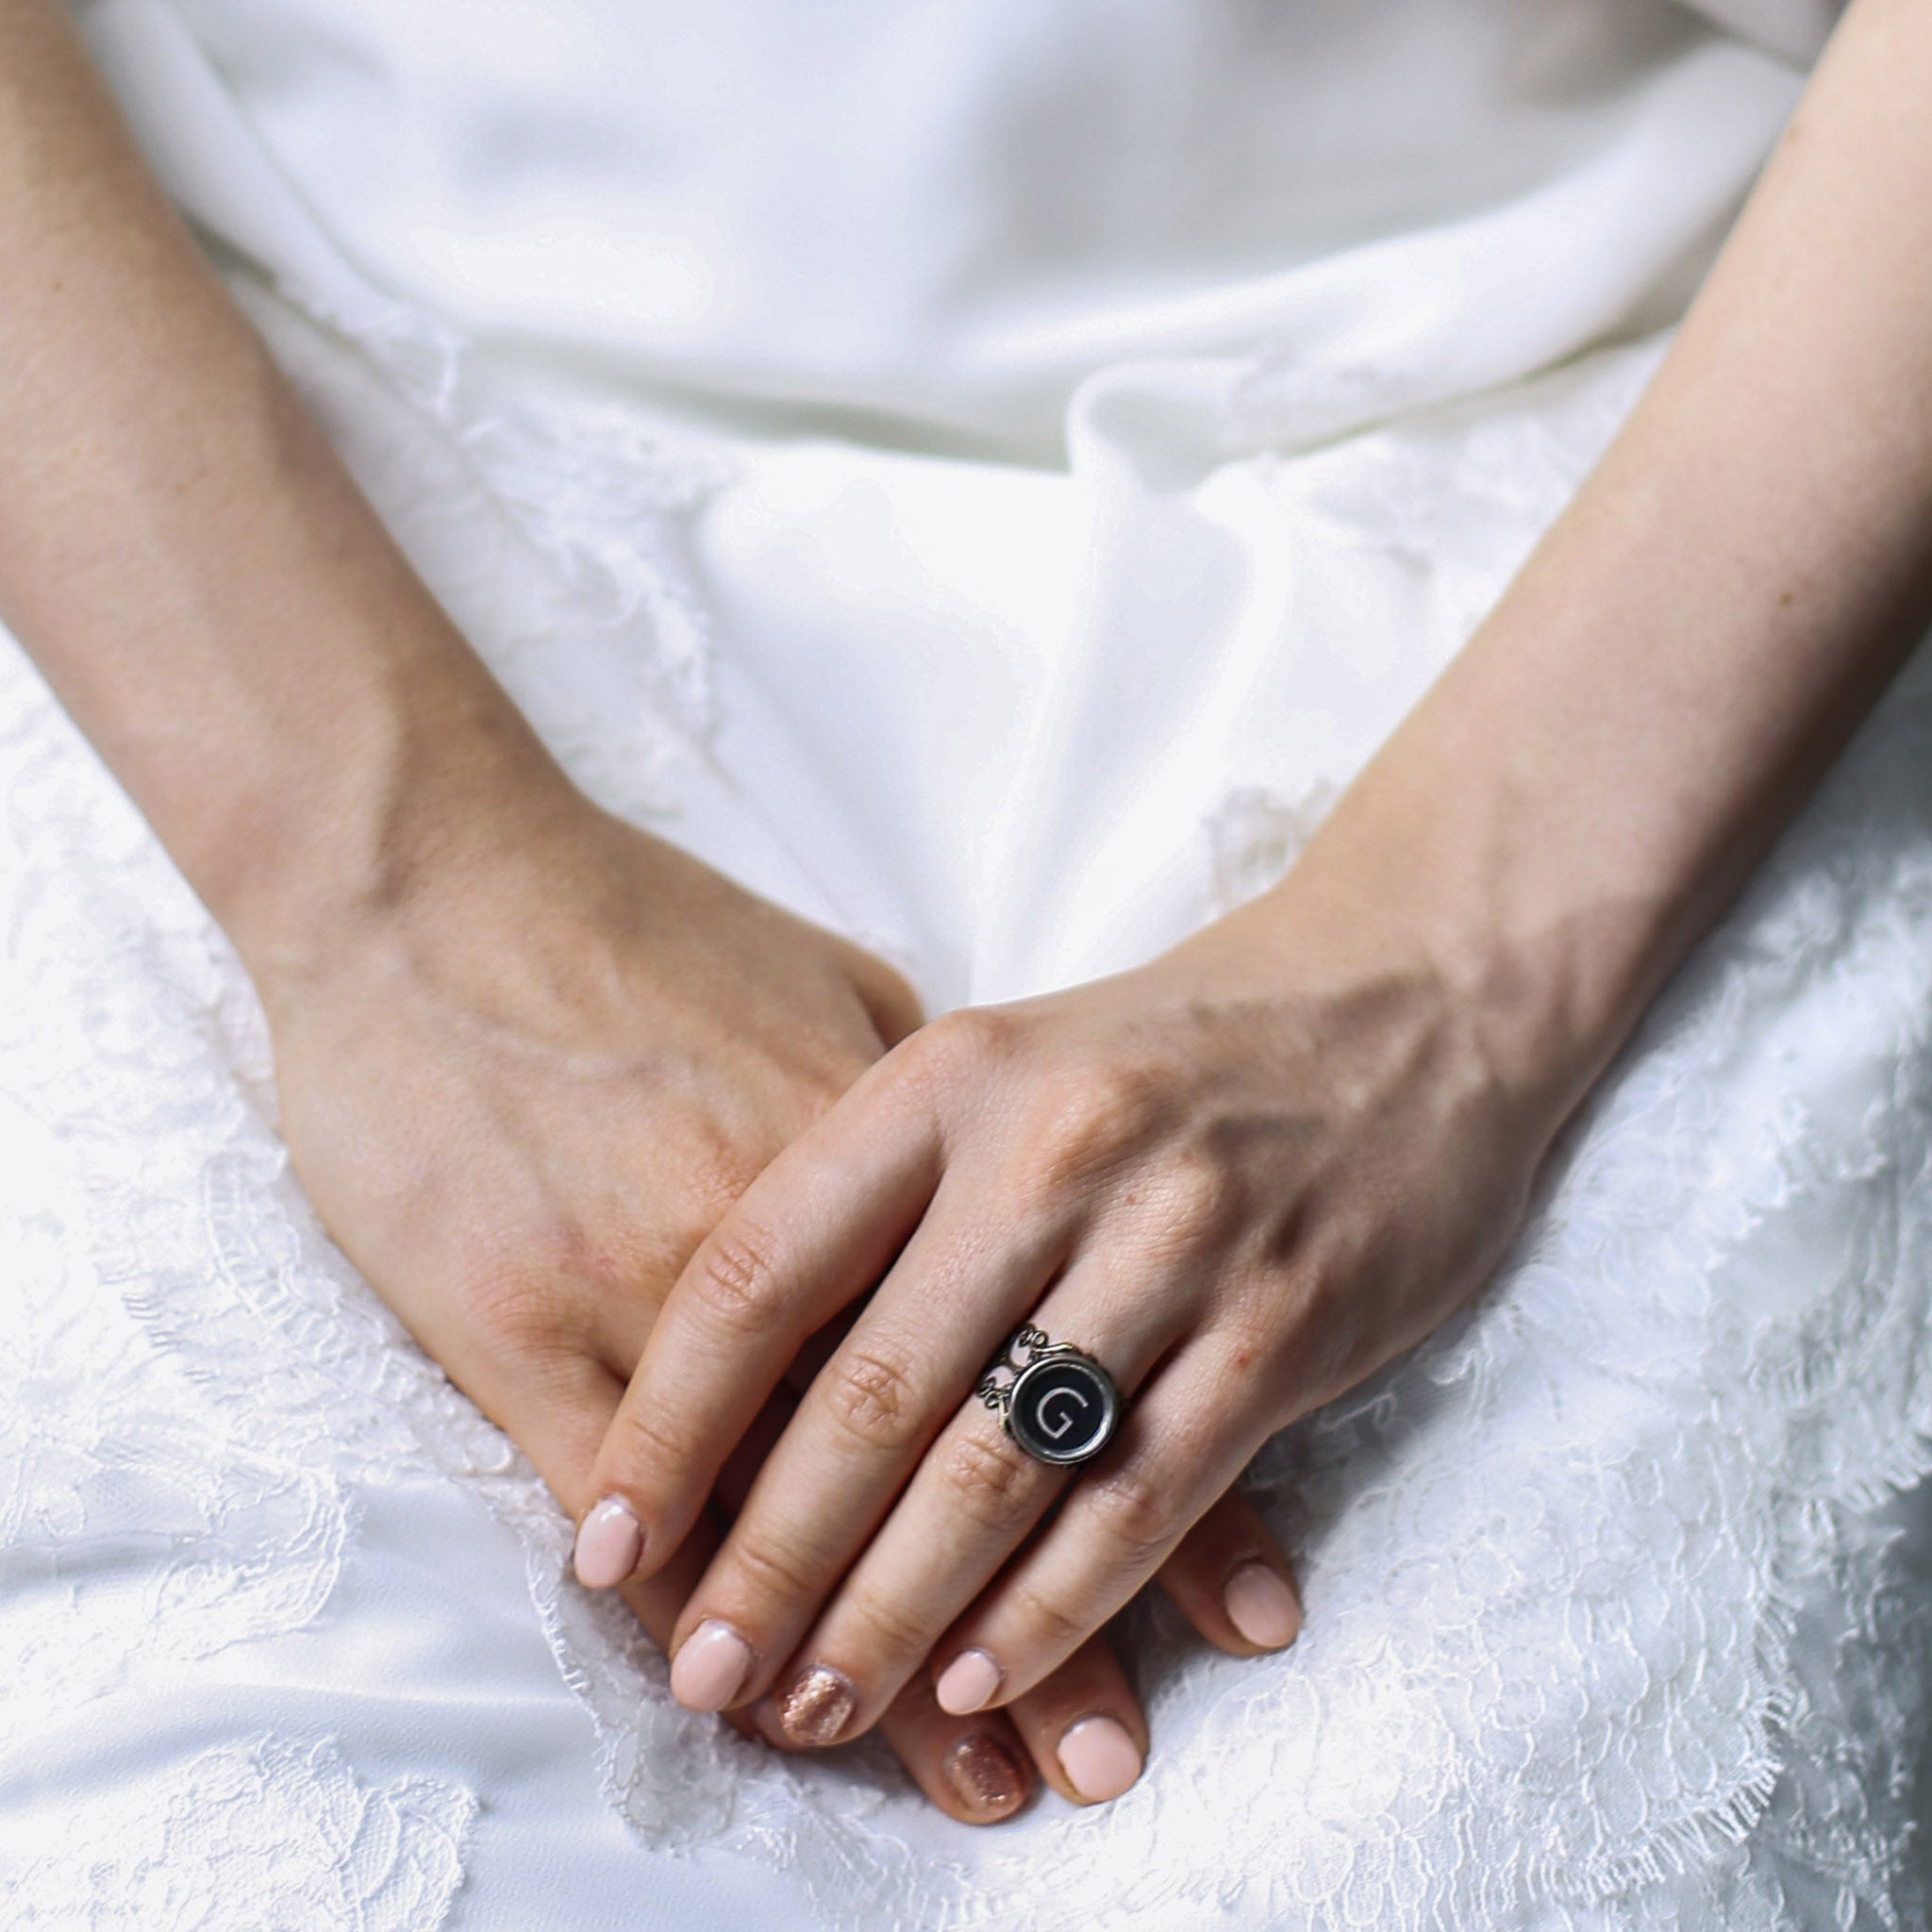 Bride wearing initial ring made of authentic vintage typewriter key in black color